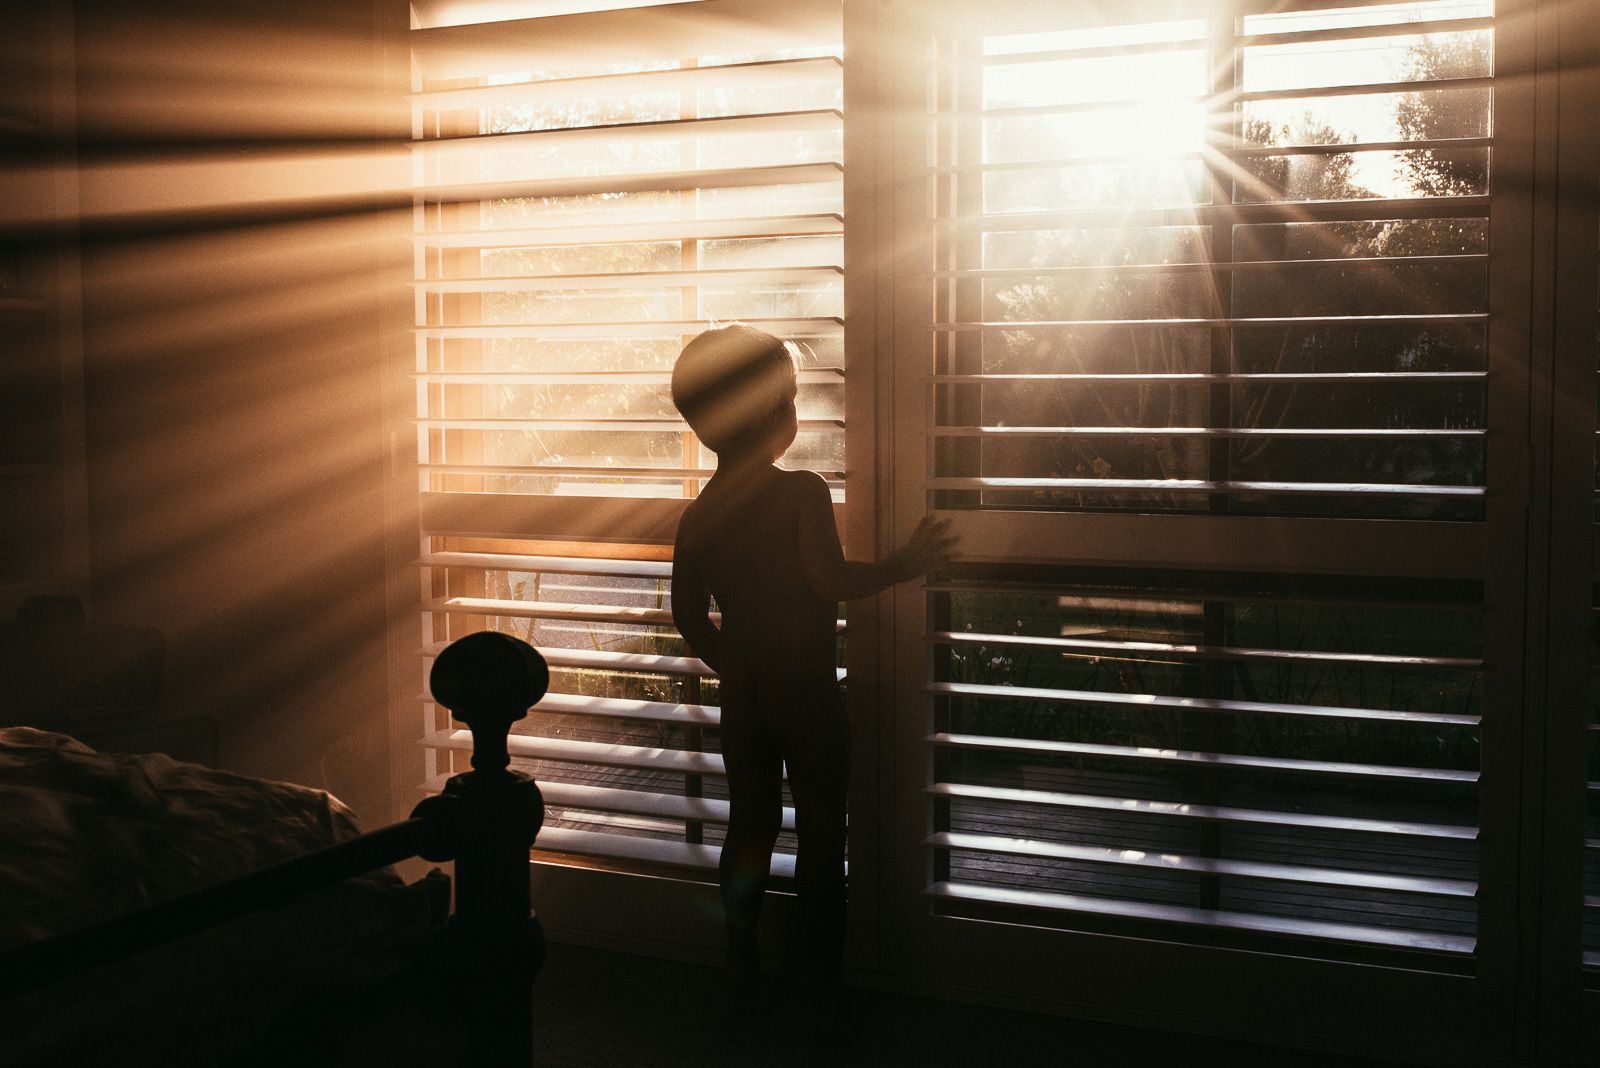 Photo Of Boy Looking Out A Window With Streaks Light Coming Through The Blinds By Amy Shire